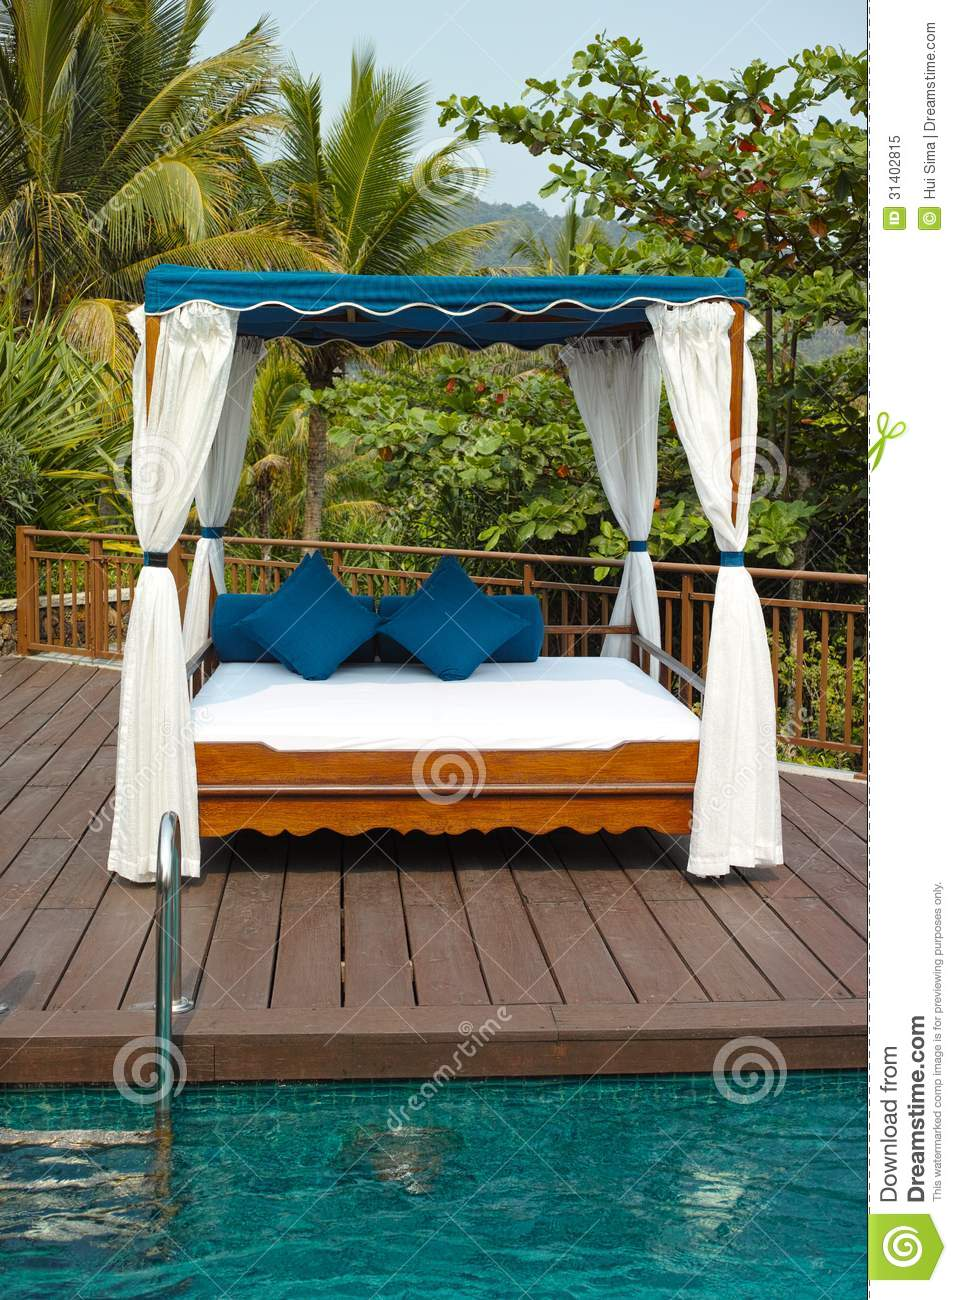 Tropical cabana and pool royalty free stock photo image for Swimming pool cabanas